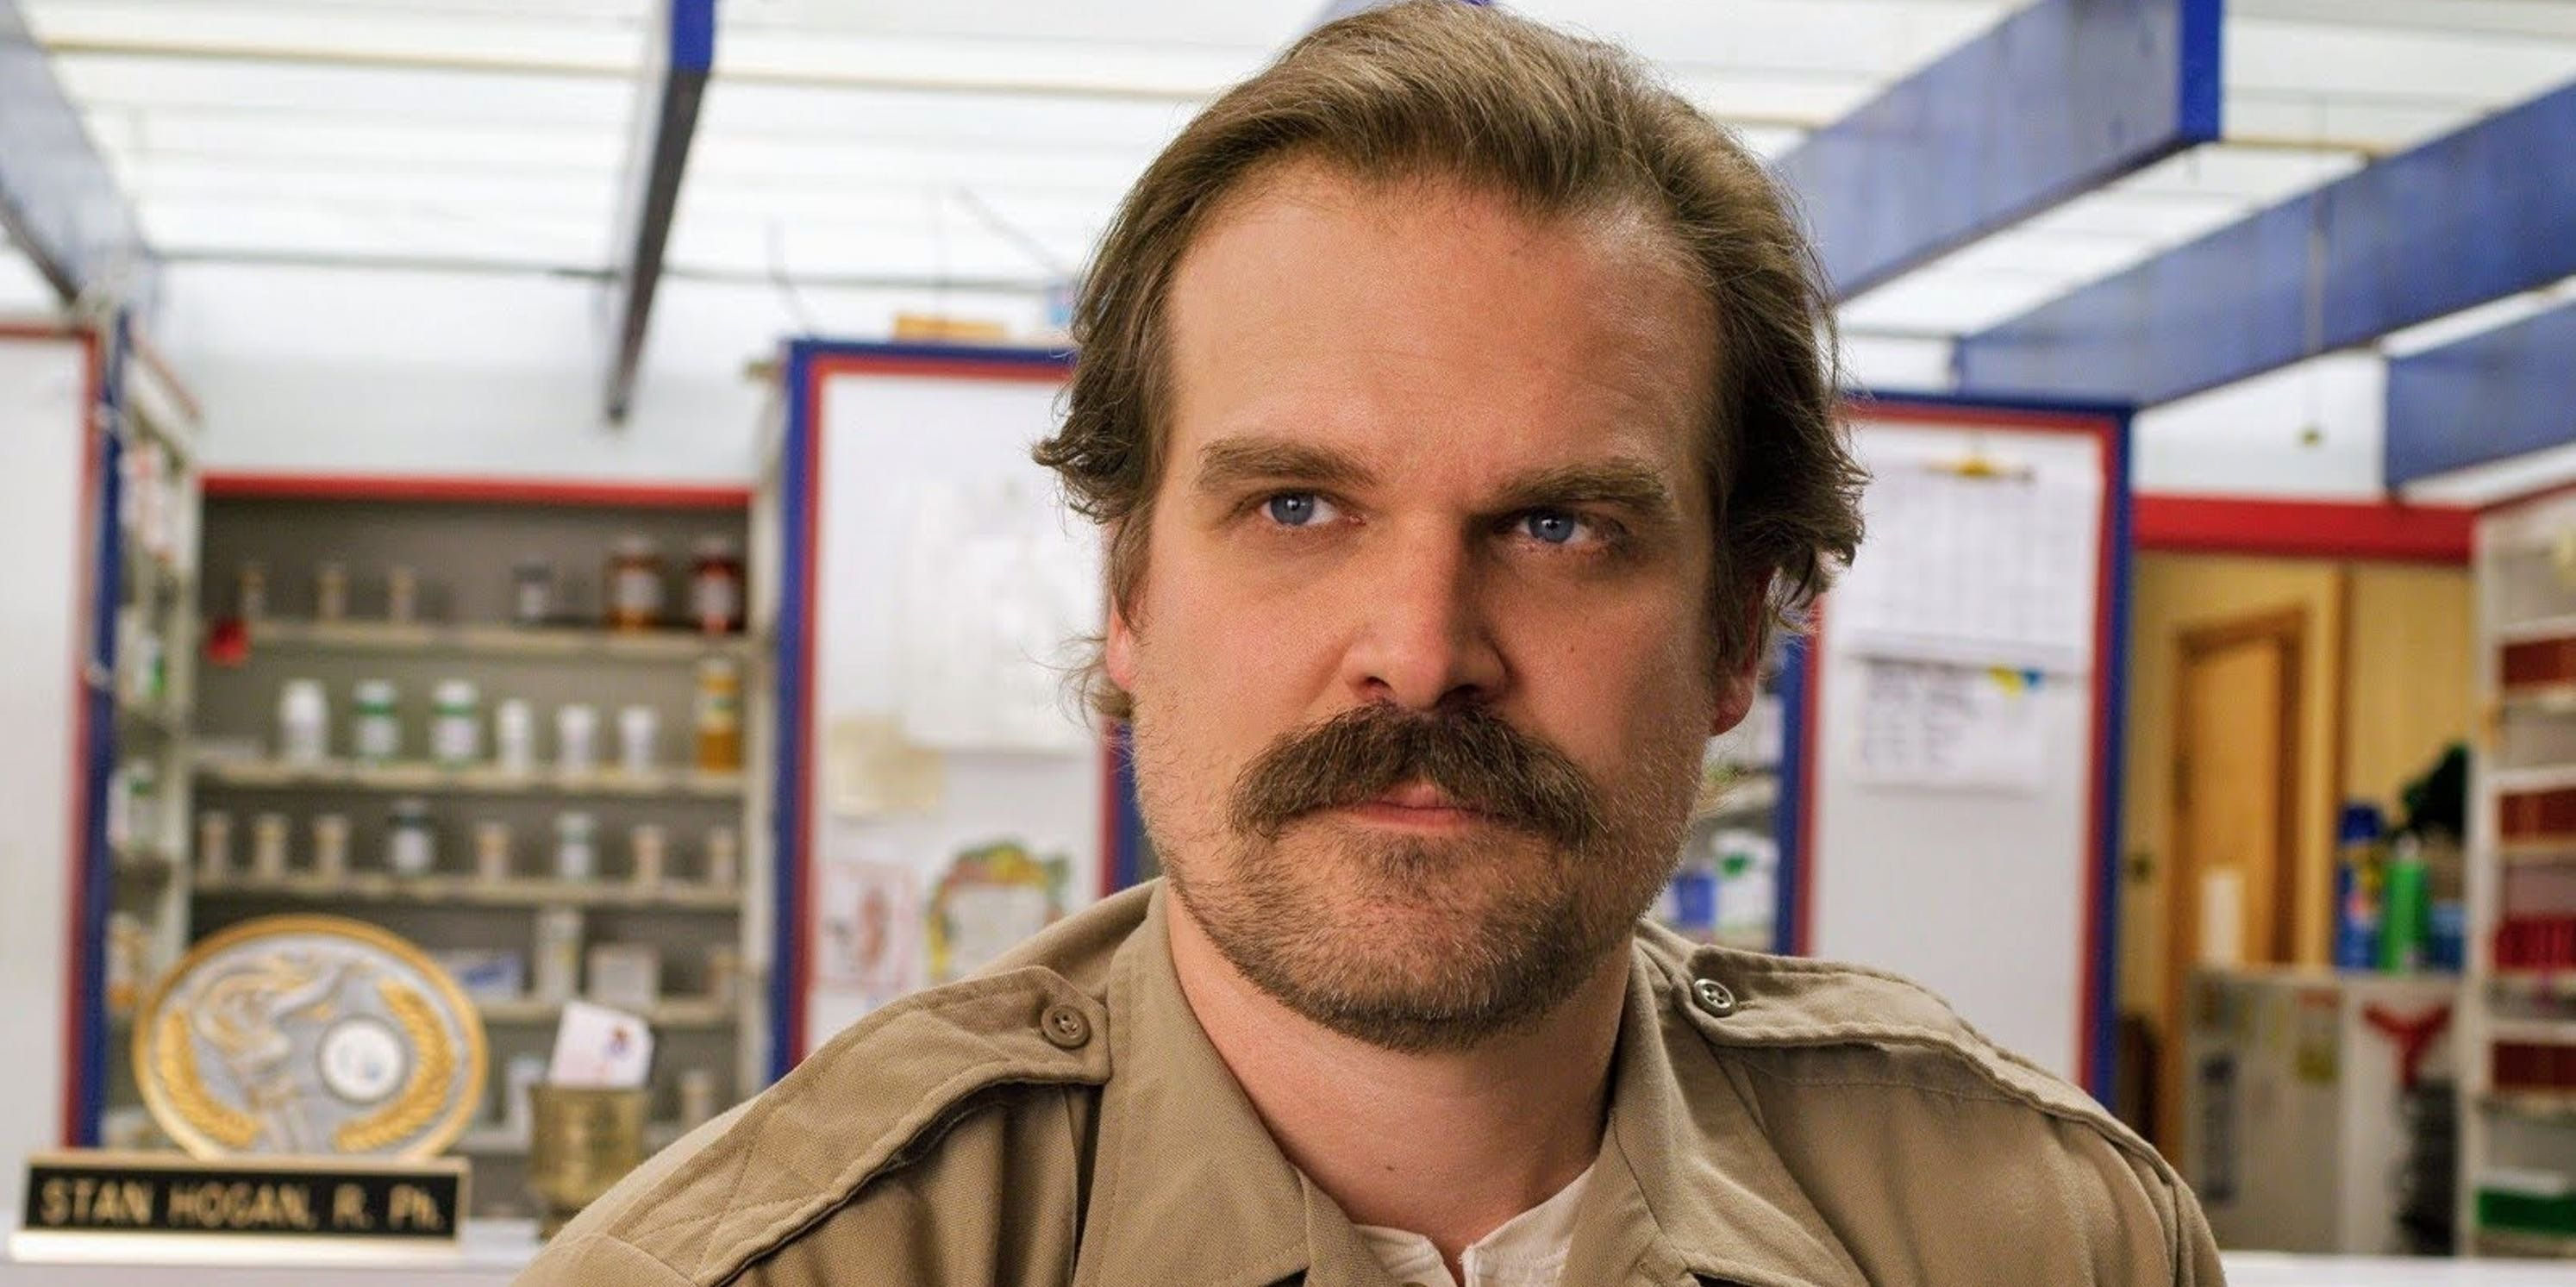 Stranger Things Season 4 Sets Photo Hints at Hopper's Return